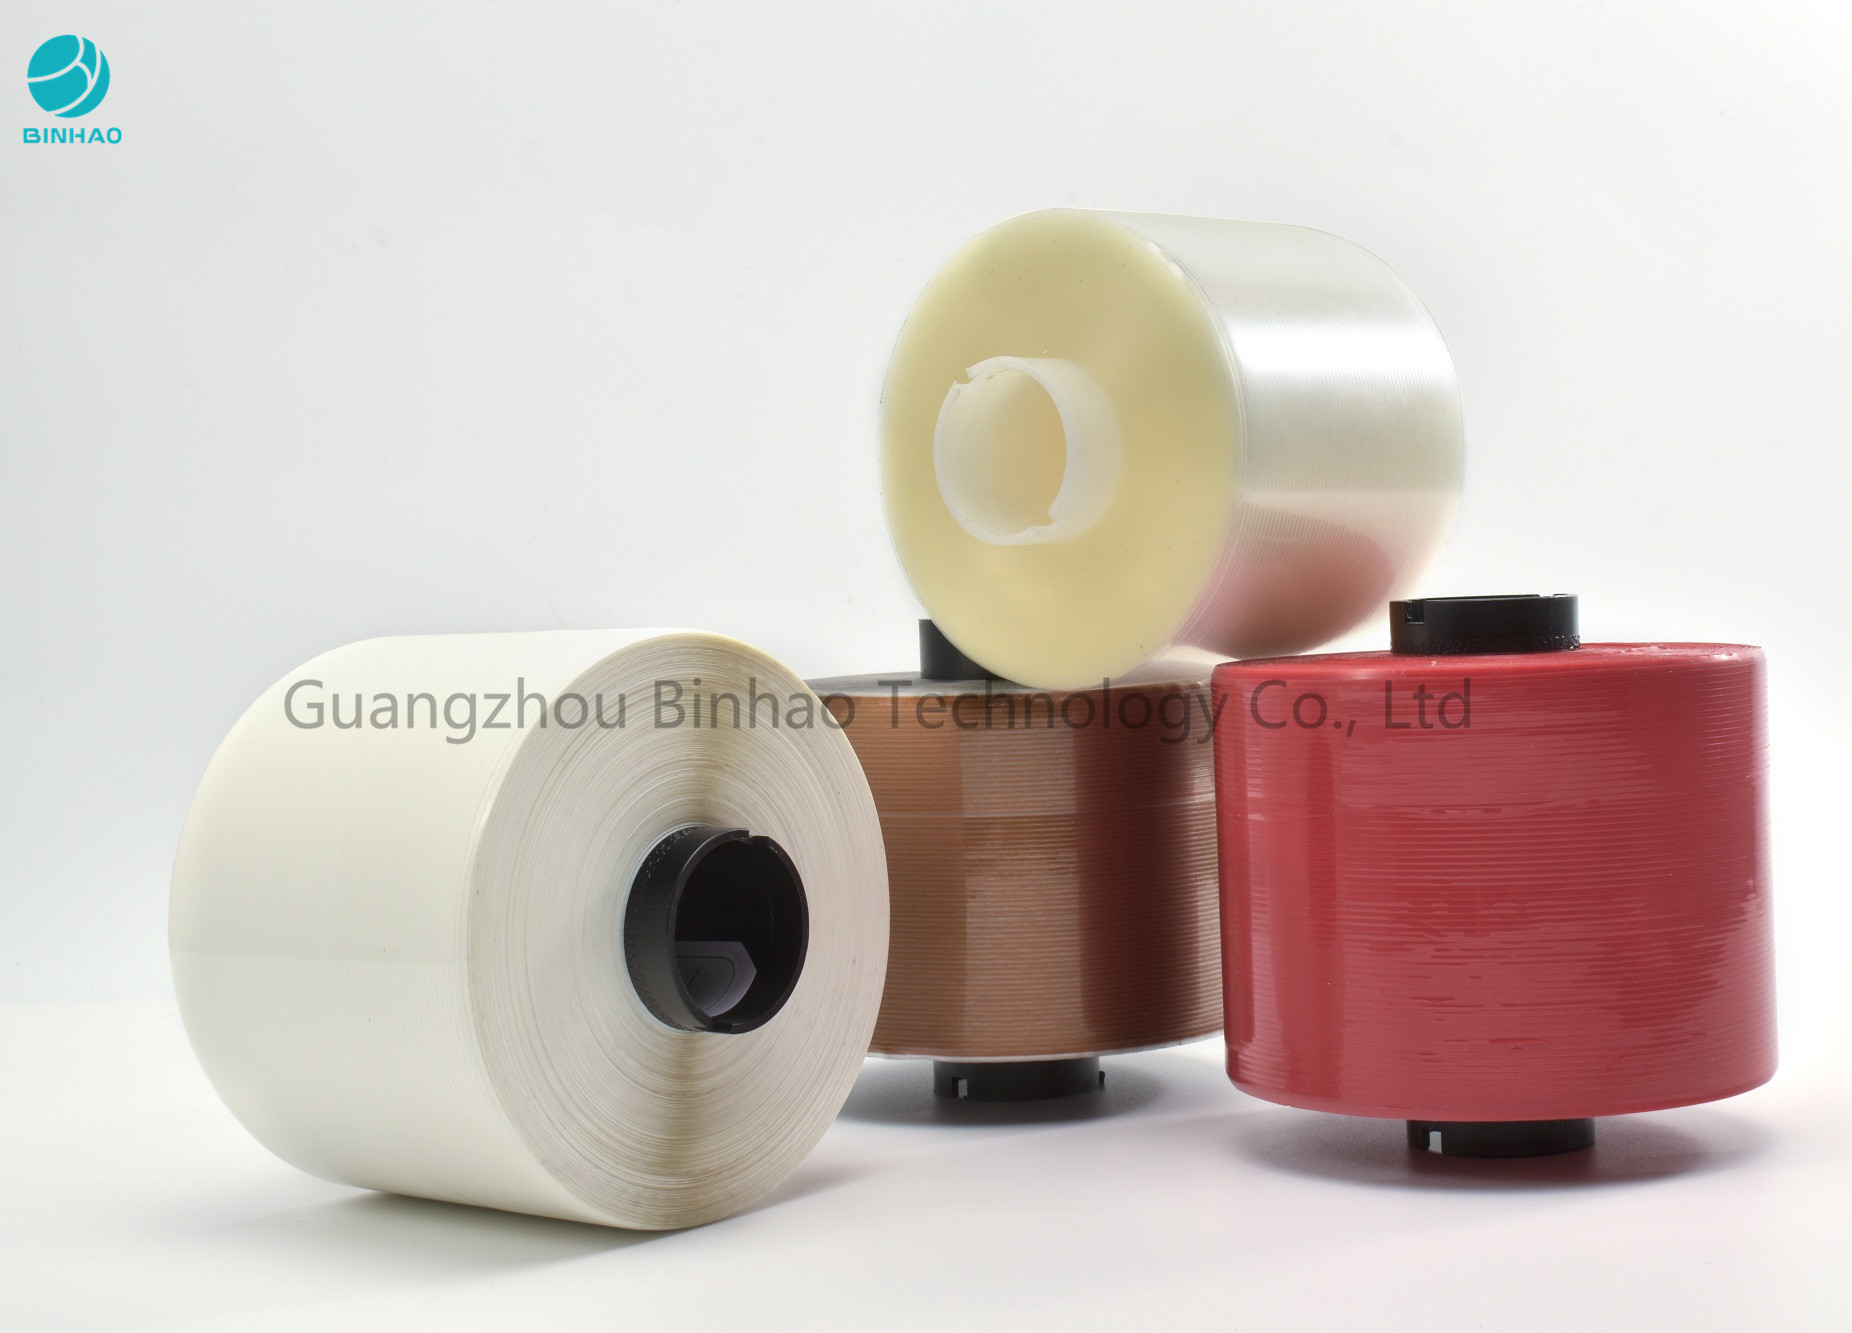 Customize Bobbin Cigarette / Tobacco Tear Tape For Sealing And Opening Packaging Film In 40micron BOPP